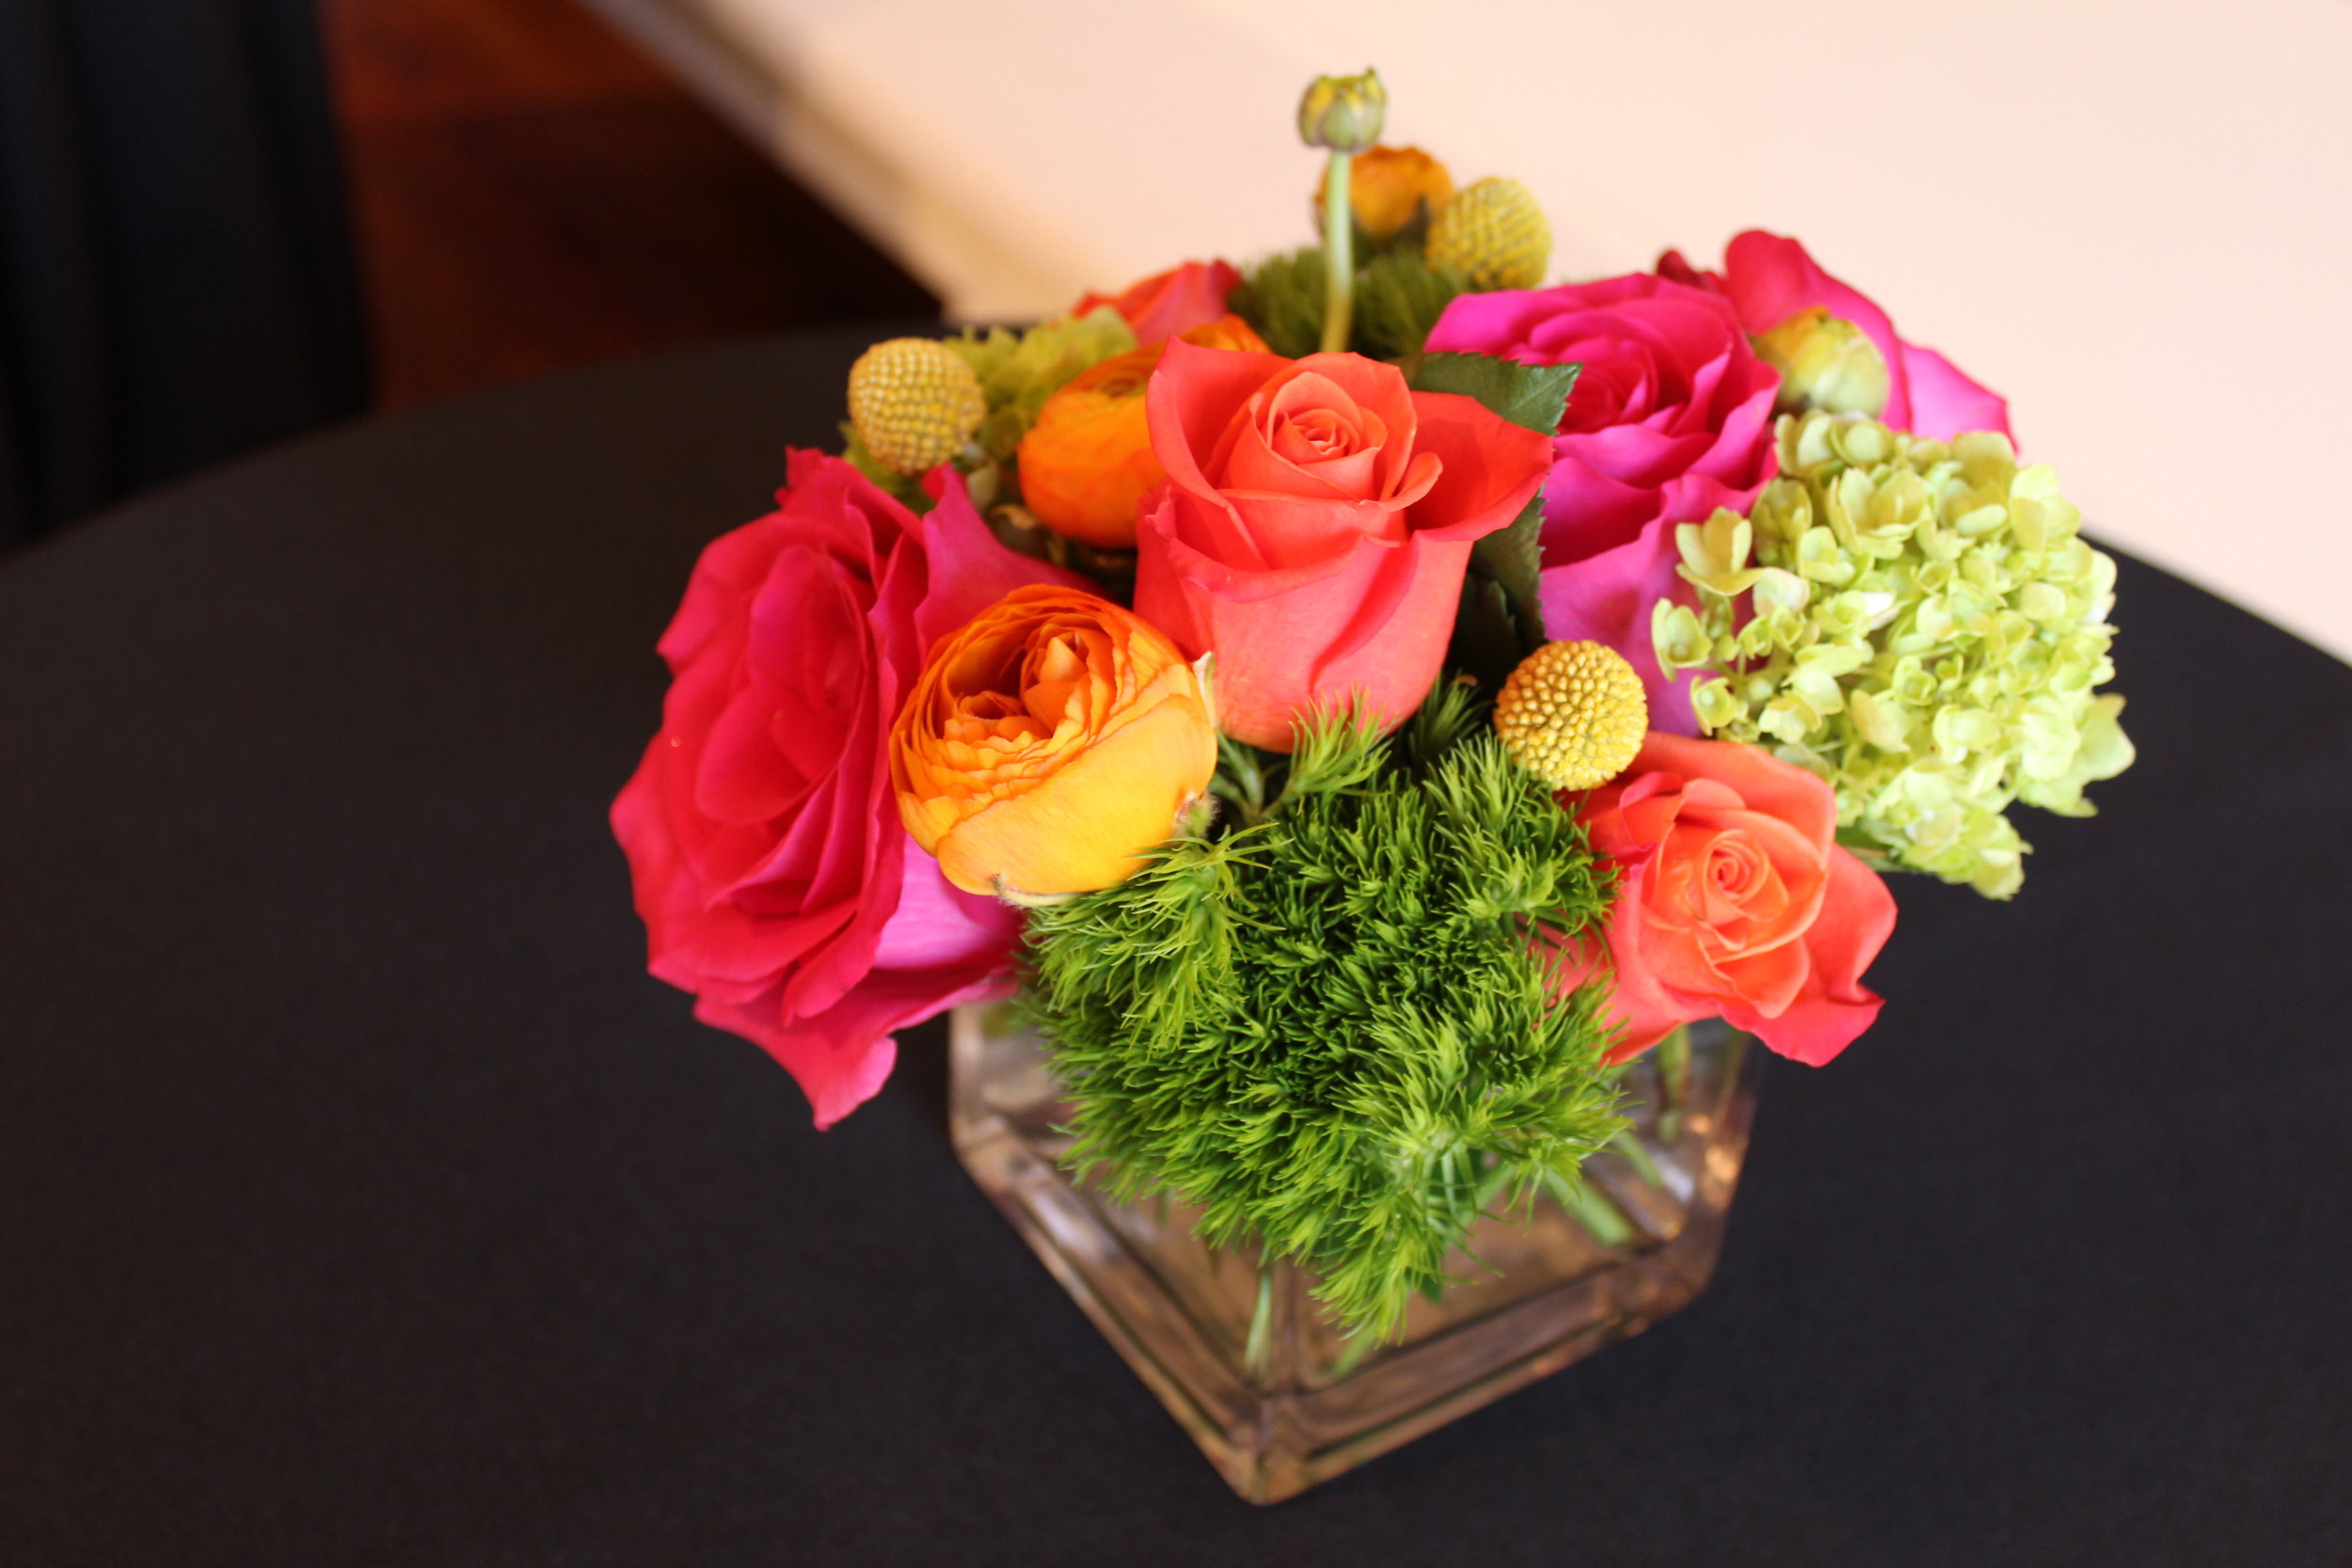 Colorful Pink, Green and Pink Floral Arrangement in 4x4 Cube 2.jpg